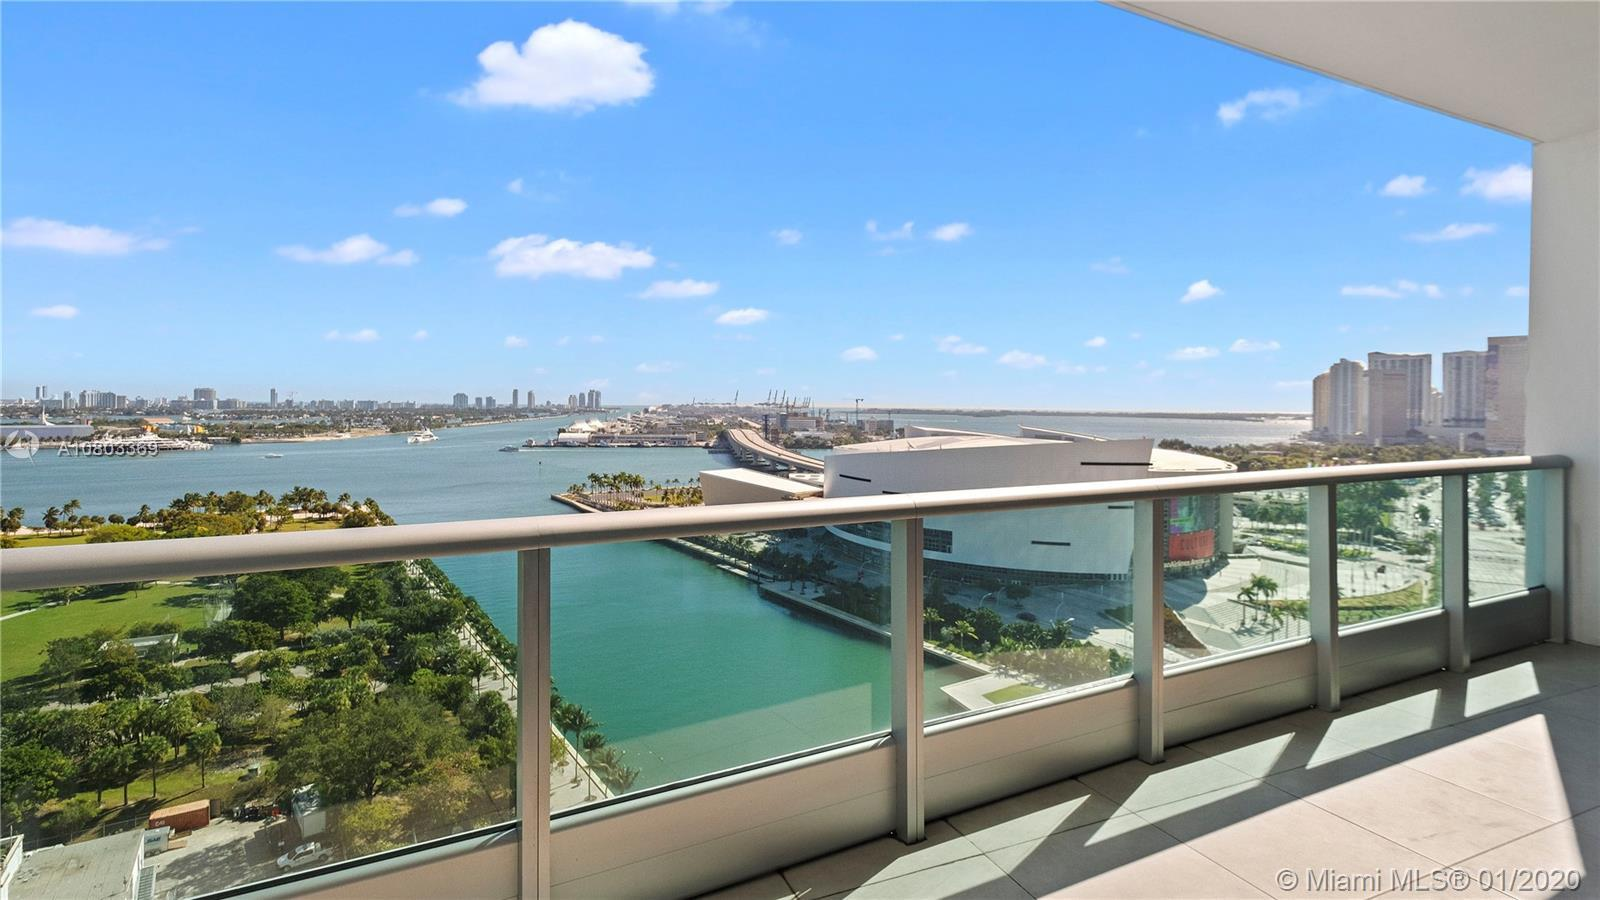 SPECTACULAR 1 bedroom, 2 bathroom + Den at 900 Biscayne Condo: enjoy the unobstructed views of the b